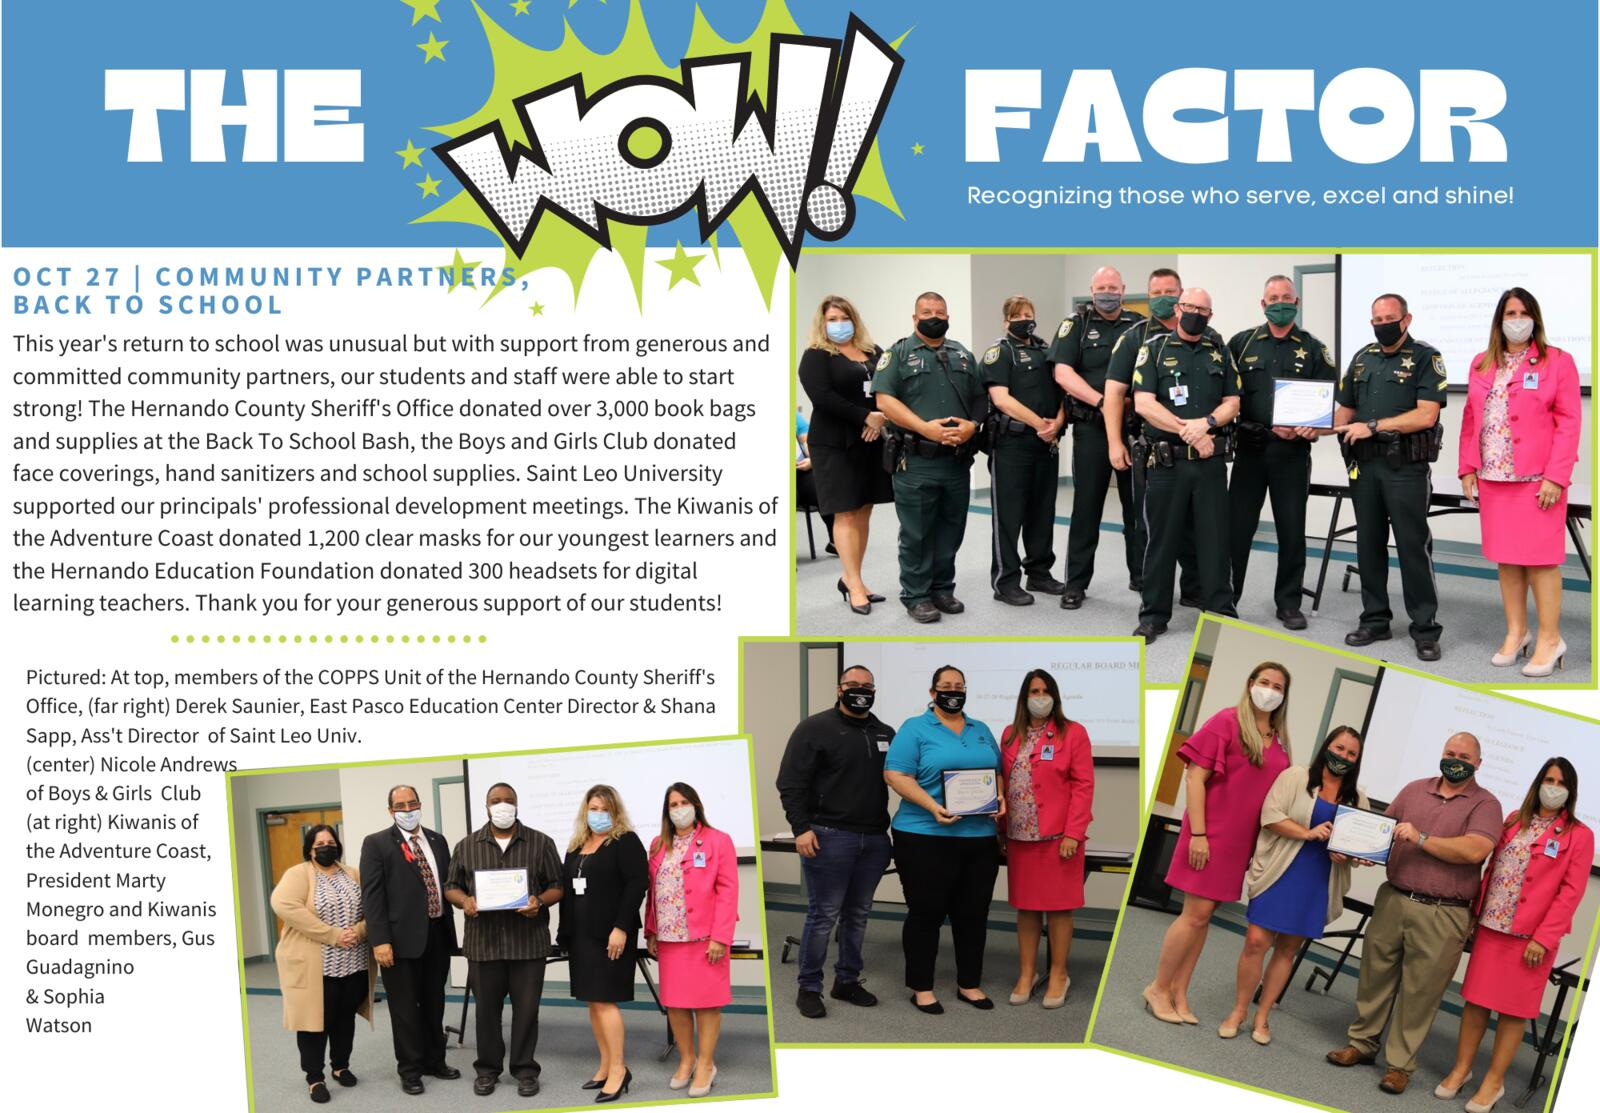 The WOW Factor - Oct 27 - Community Partners